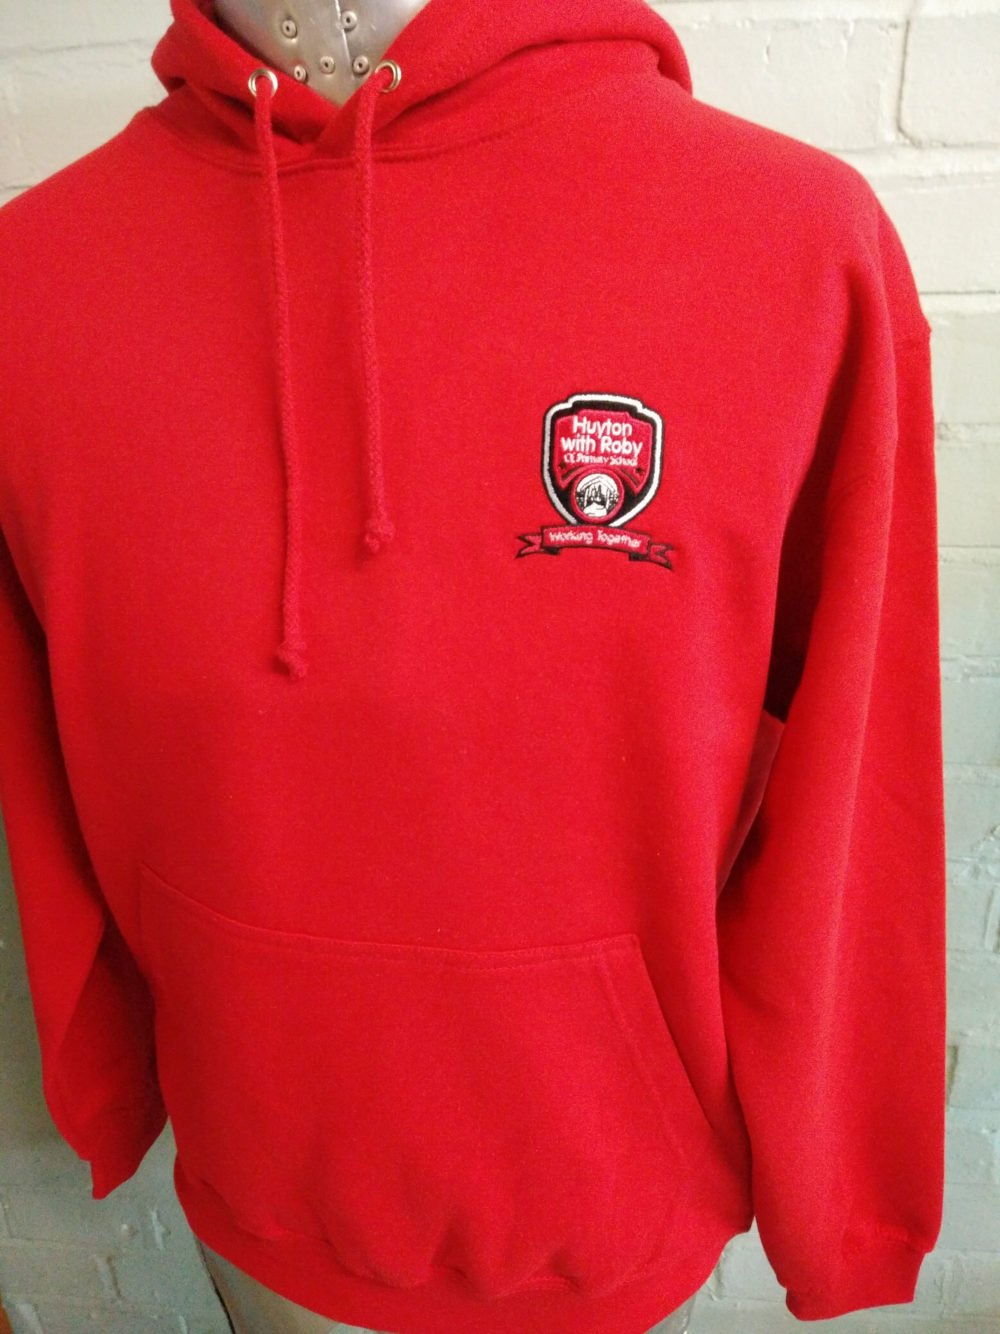 Huyton Red Levers Hoodies 2017